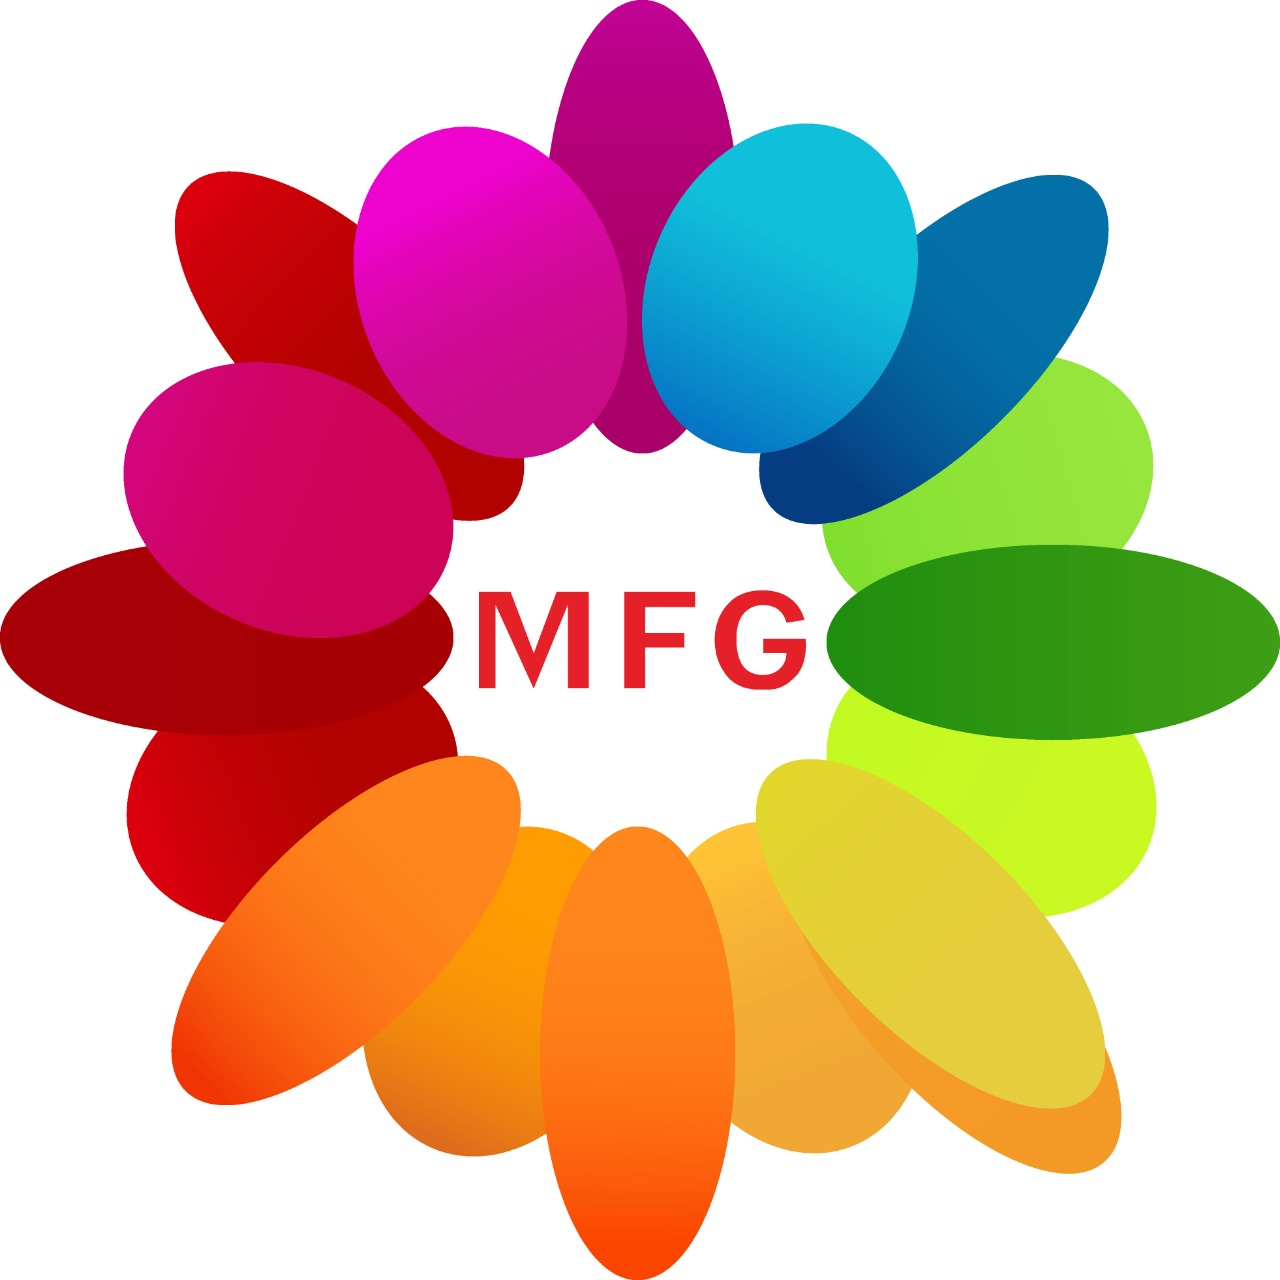 bunch of 20 red roses with 2 daity milk fruit and nut with 1 rakhi and roli chawal